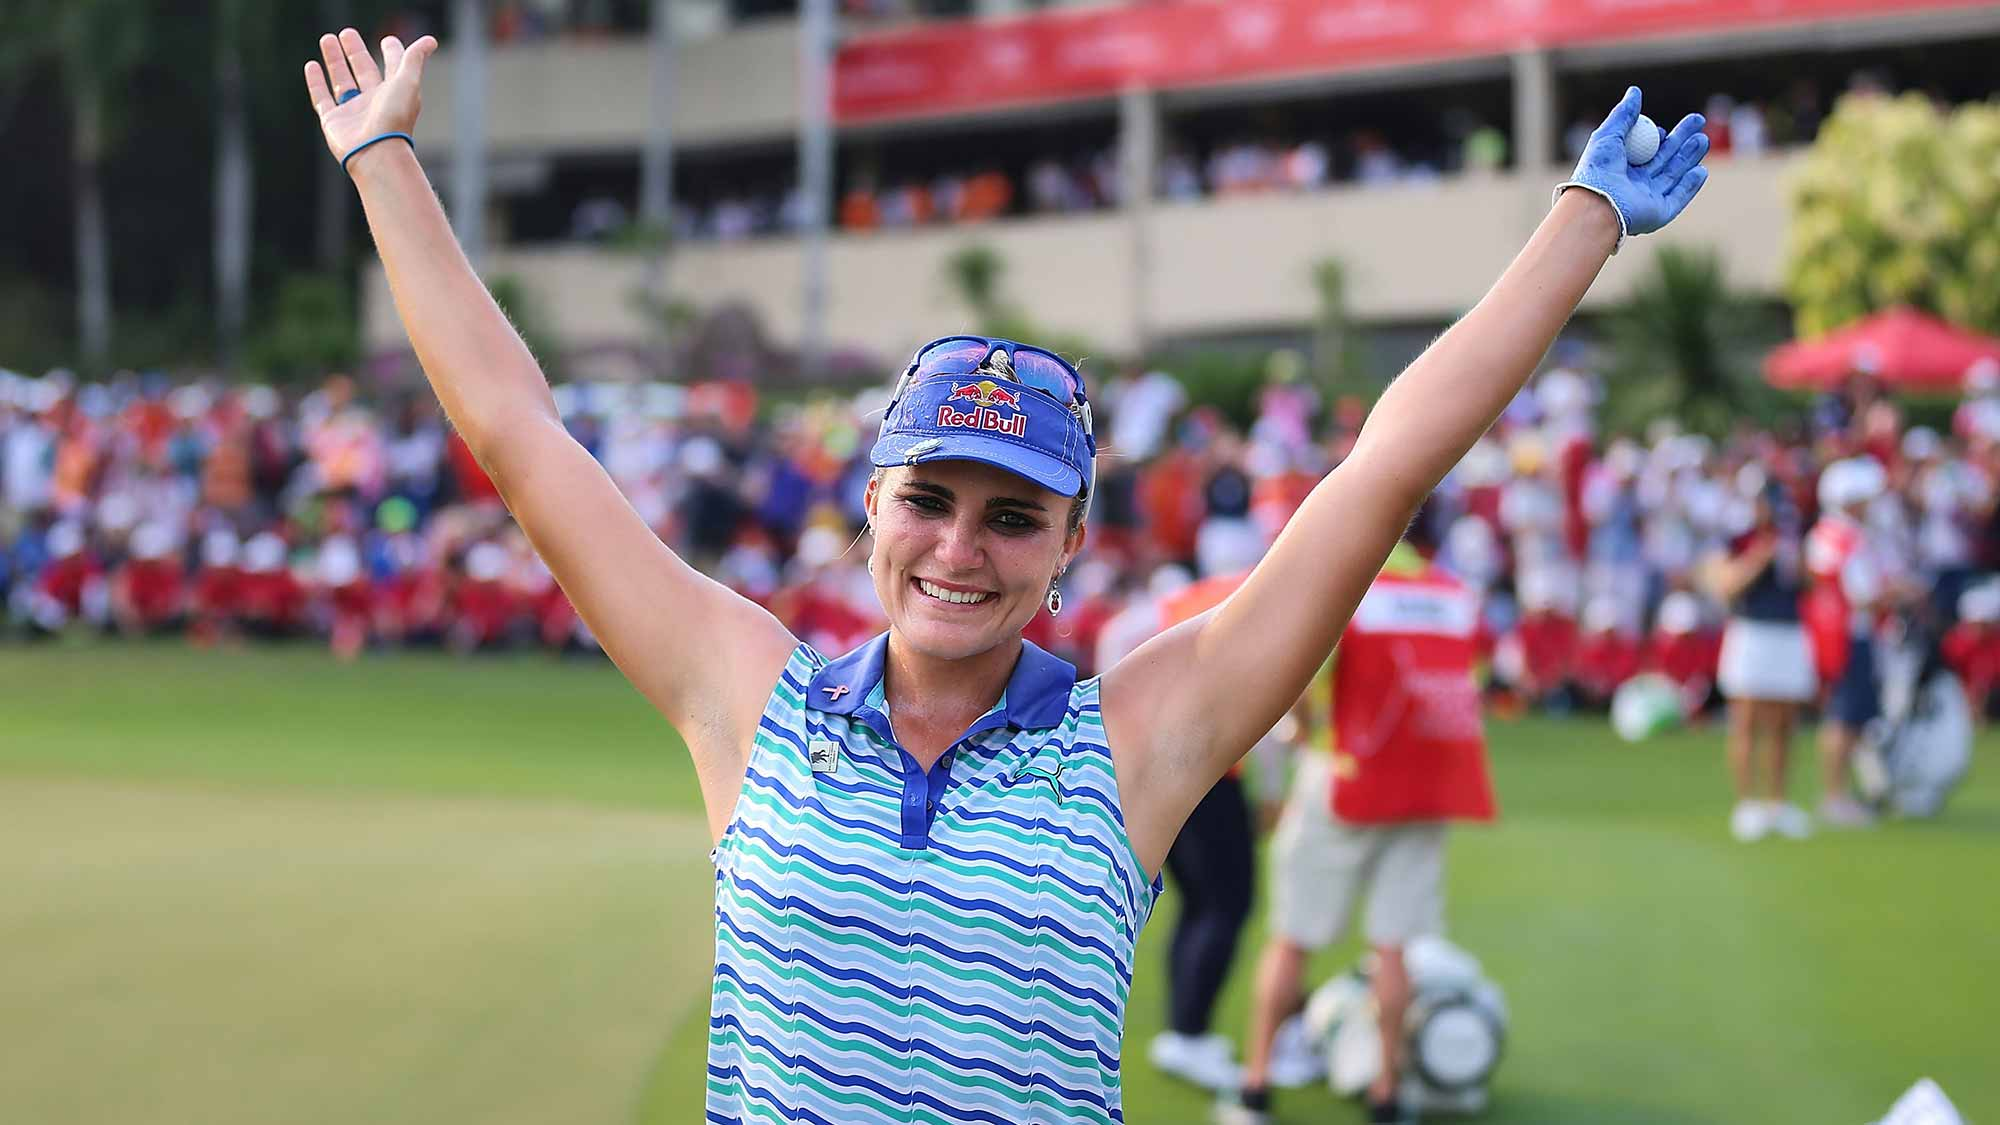 Lexi Thompson of the United States celebrates after winning the 2016 Honda LPGA Thailand at Siam Country Club